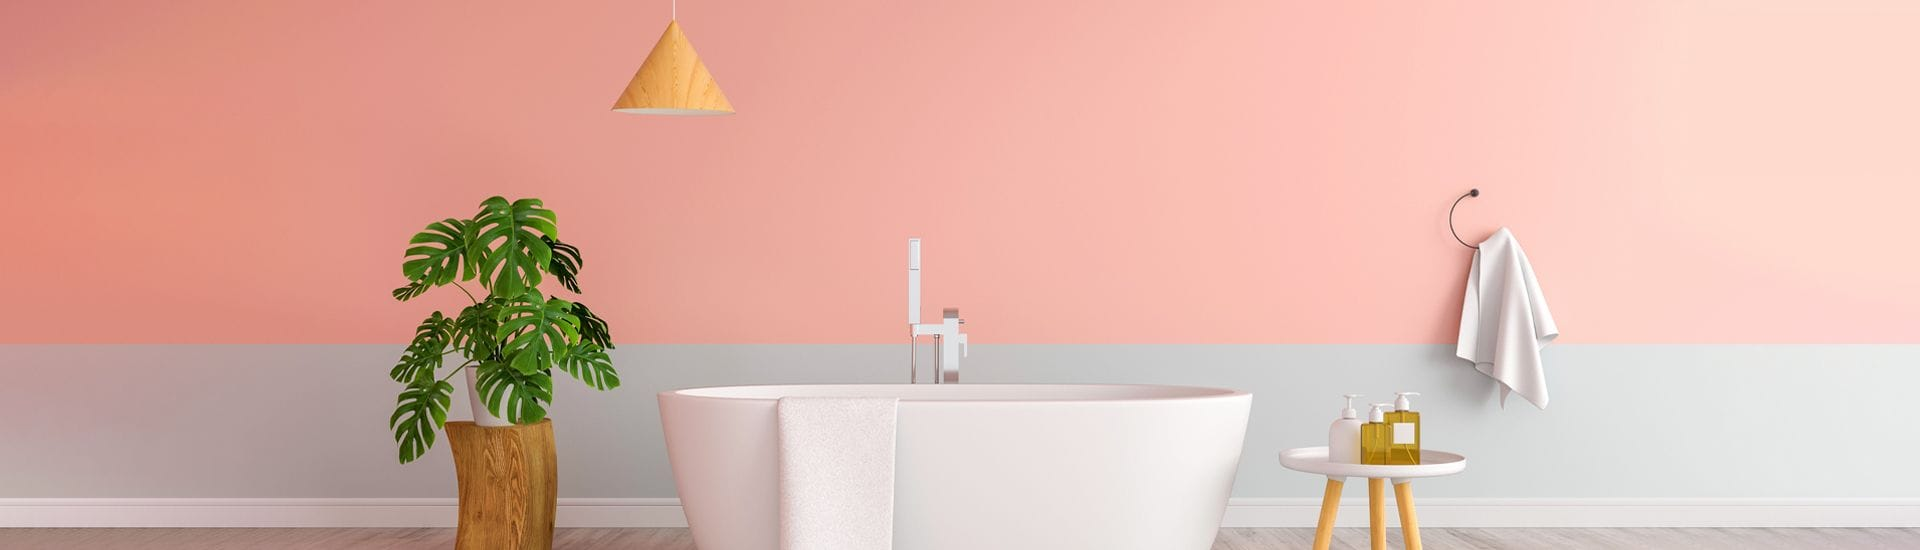 Transform your bathroom without the hassle and expense of renovating